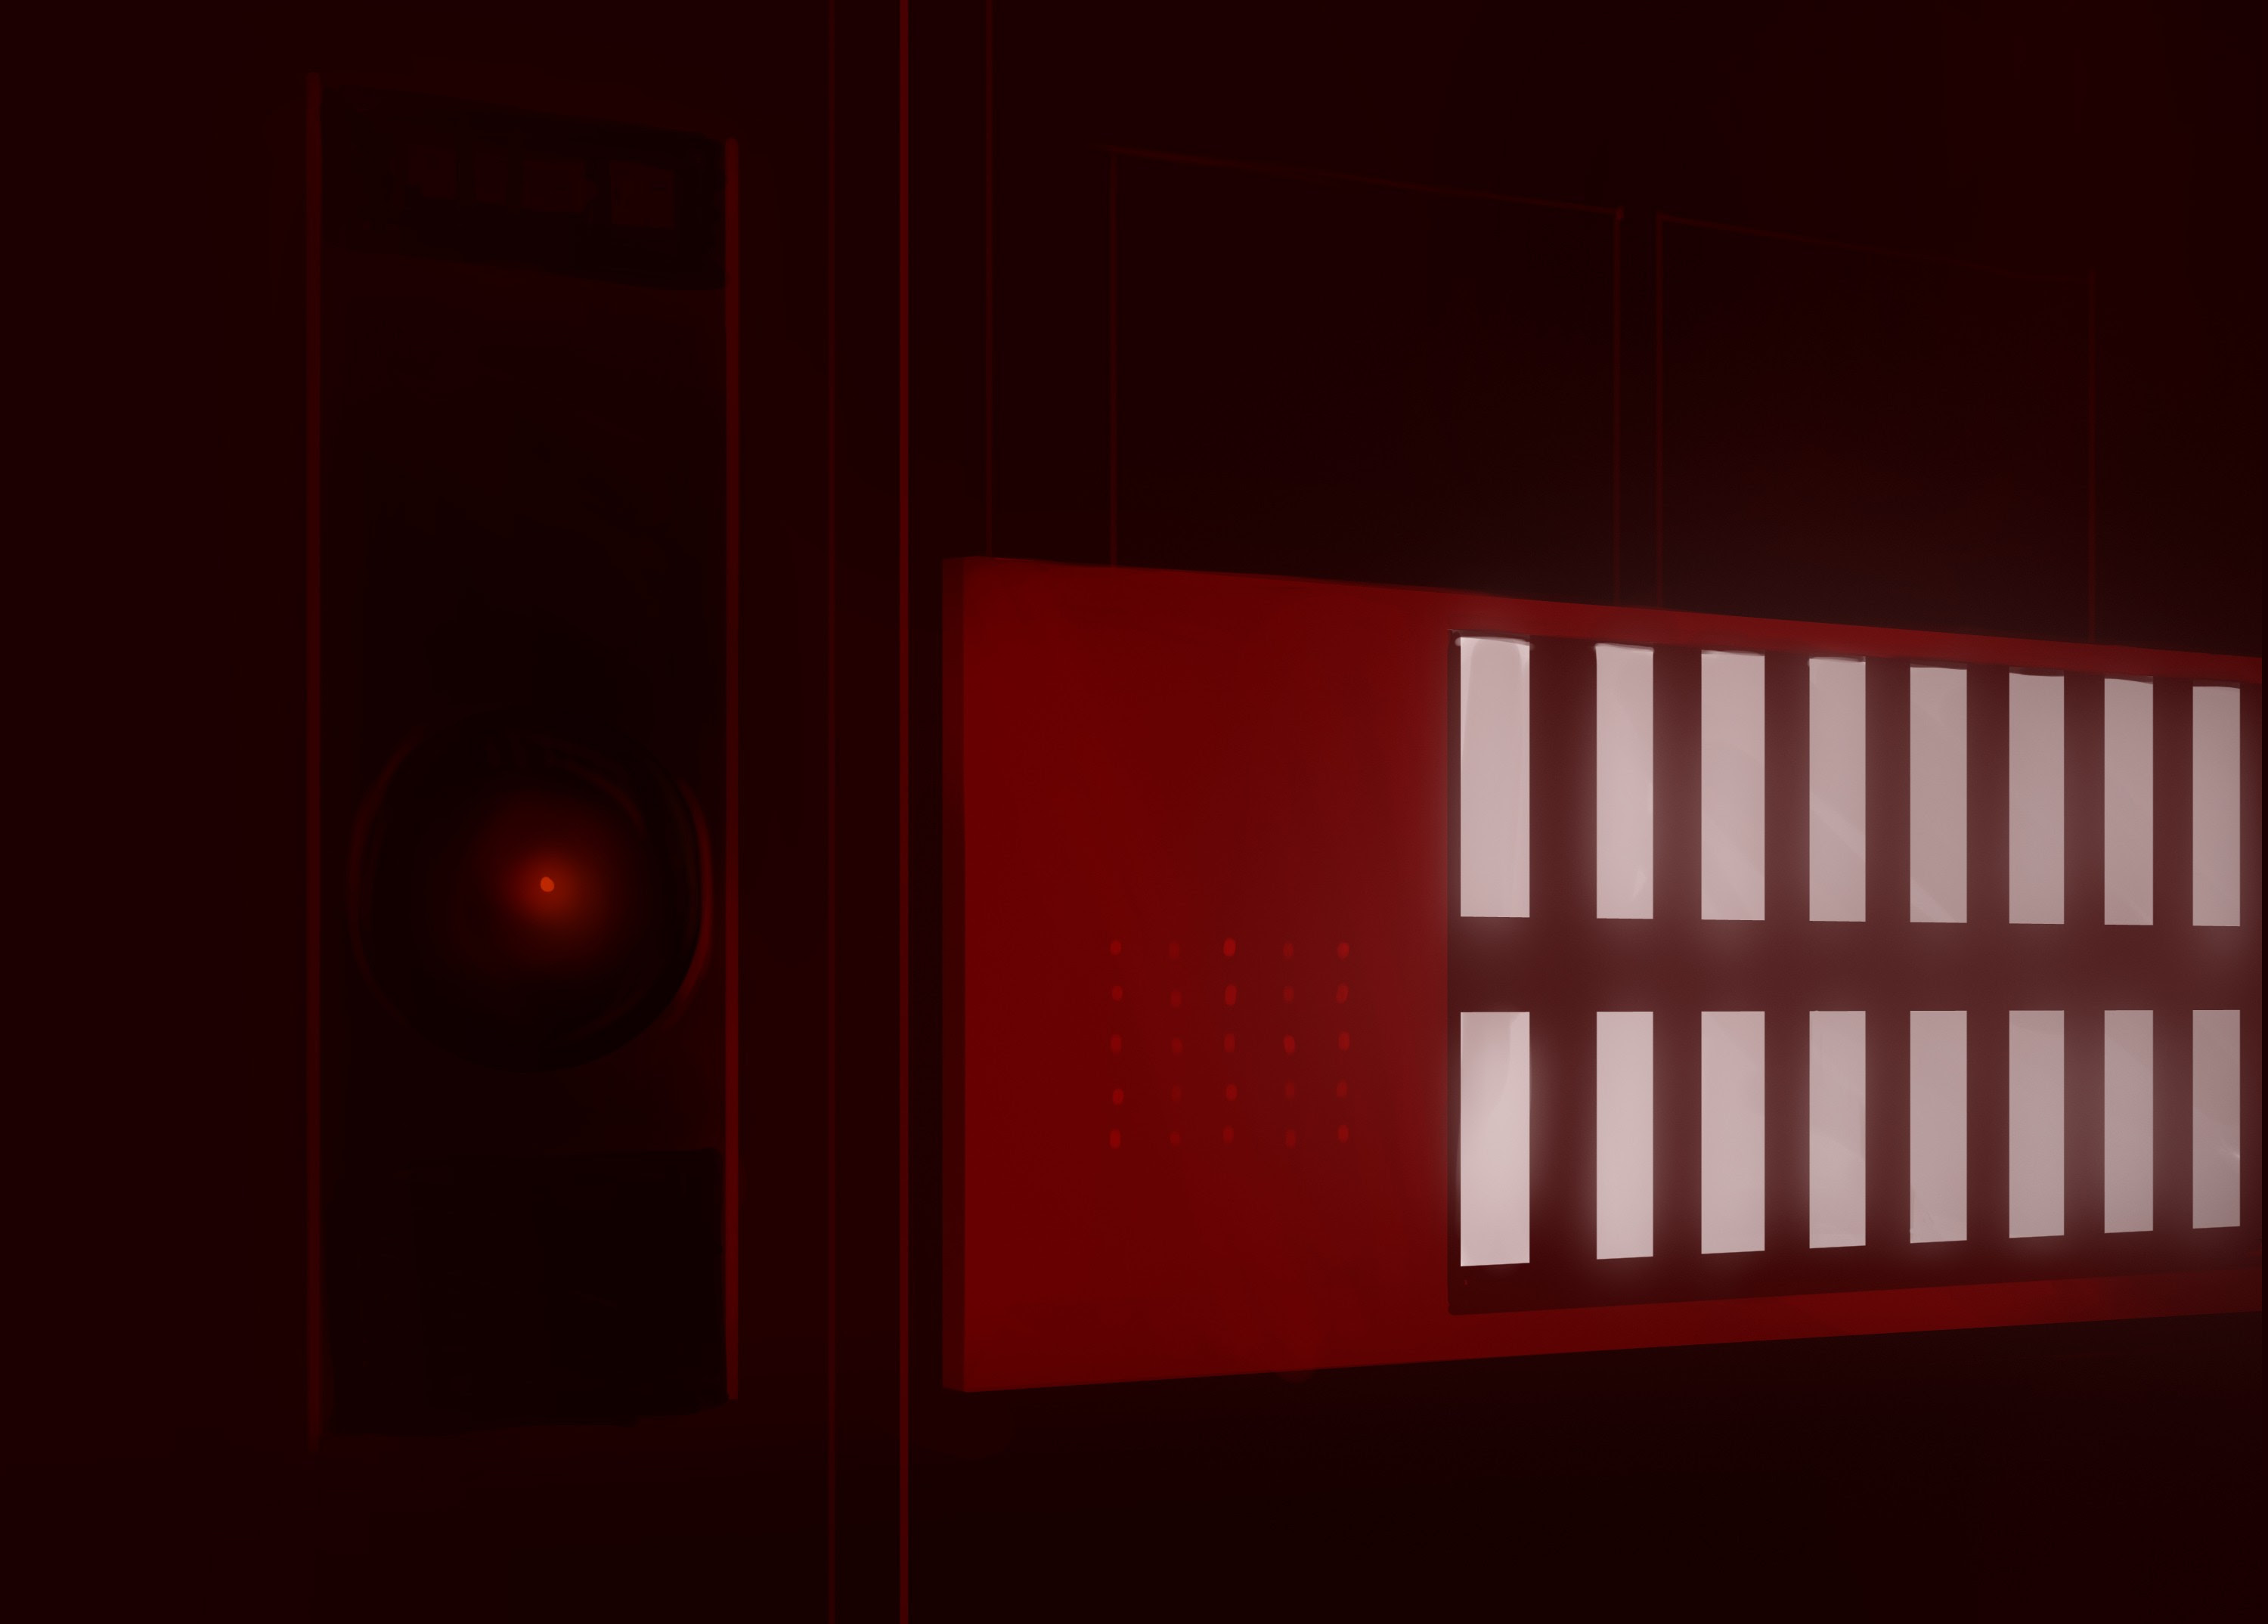 2001 A Space Odyssey Hal 9000 Wallpapers Hd Desktop And Mobile